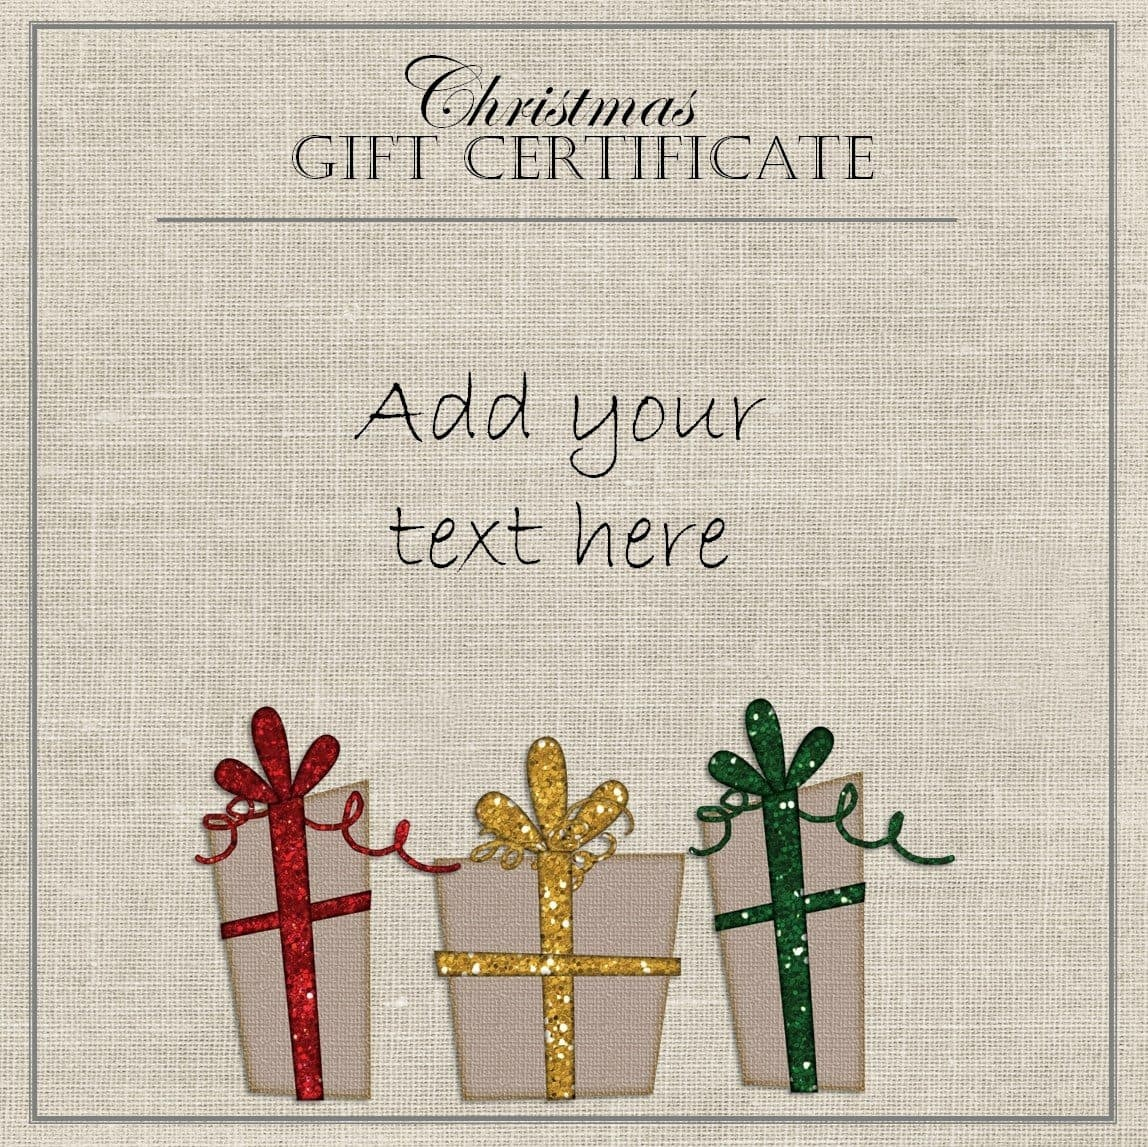 Free Christmas Gift Certificate Template   Customize Online & Download - Free Printable Christmas Gift Voucher Templates